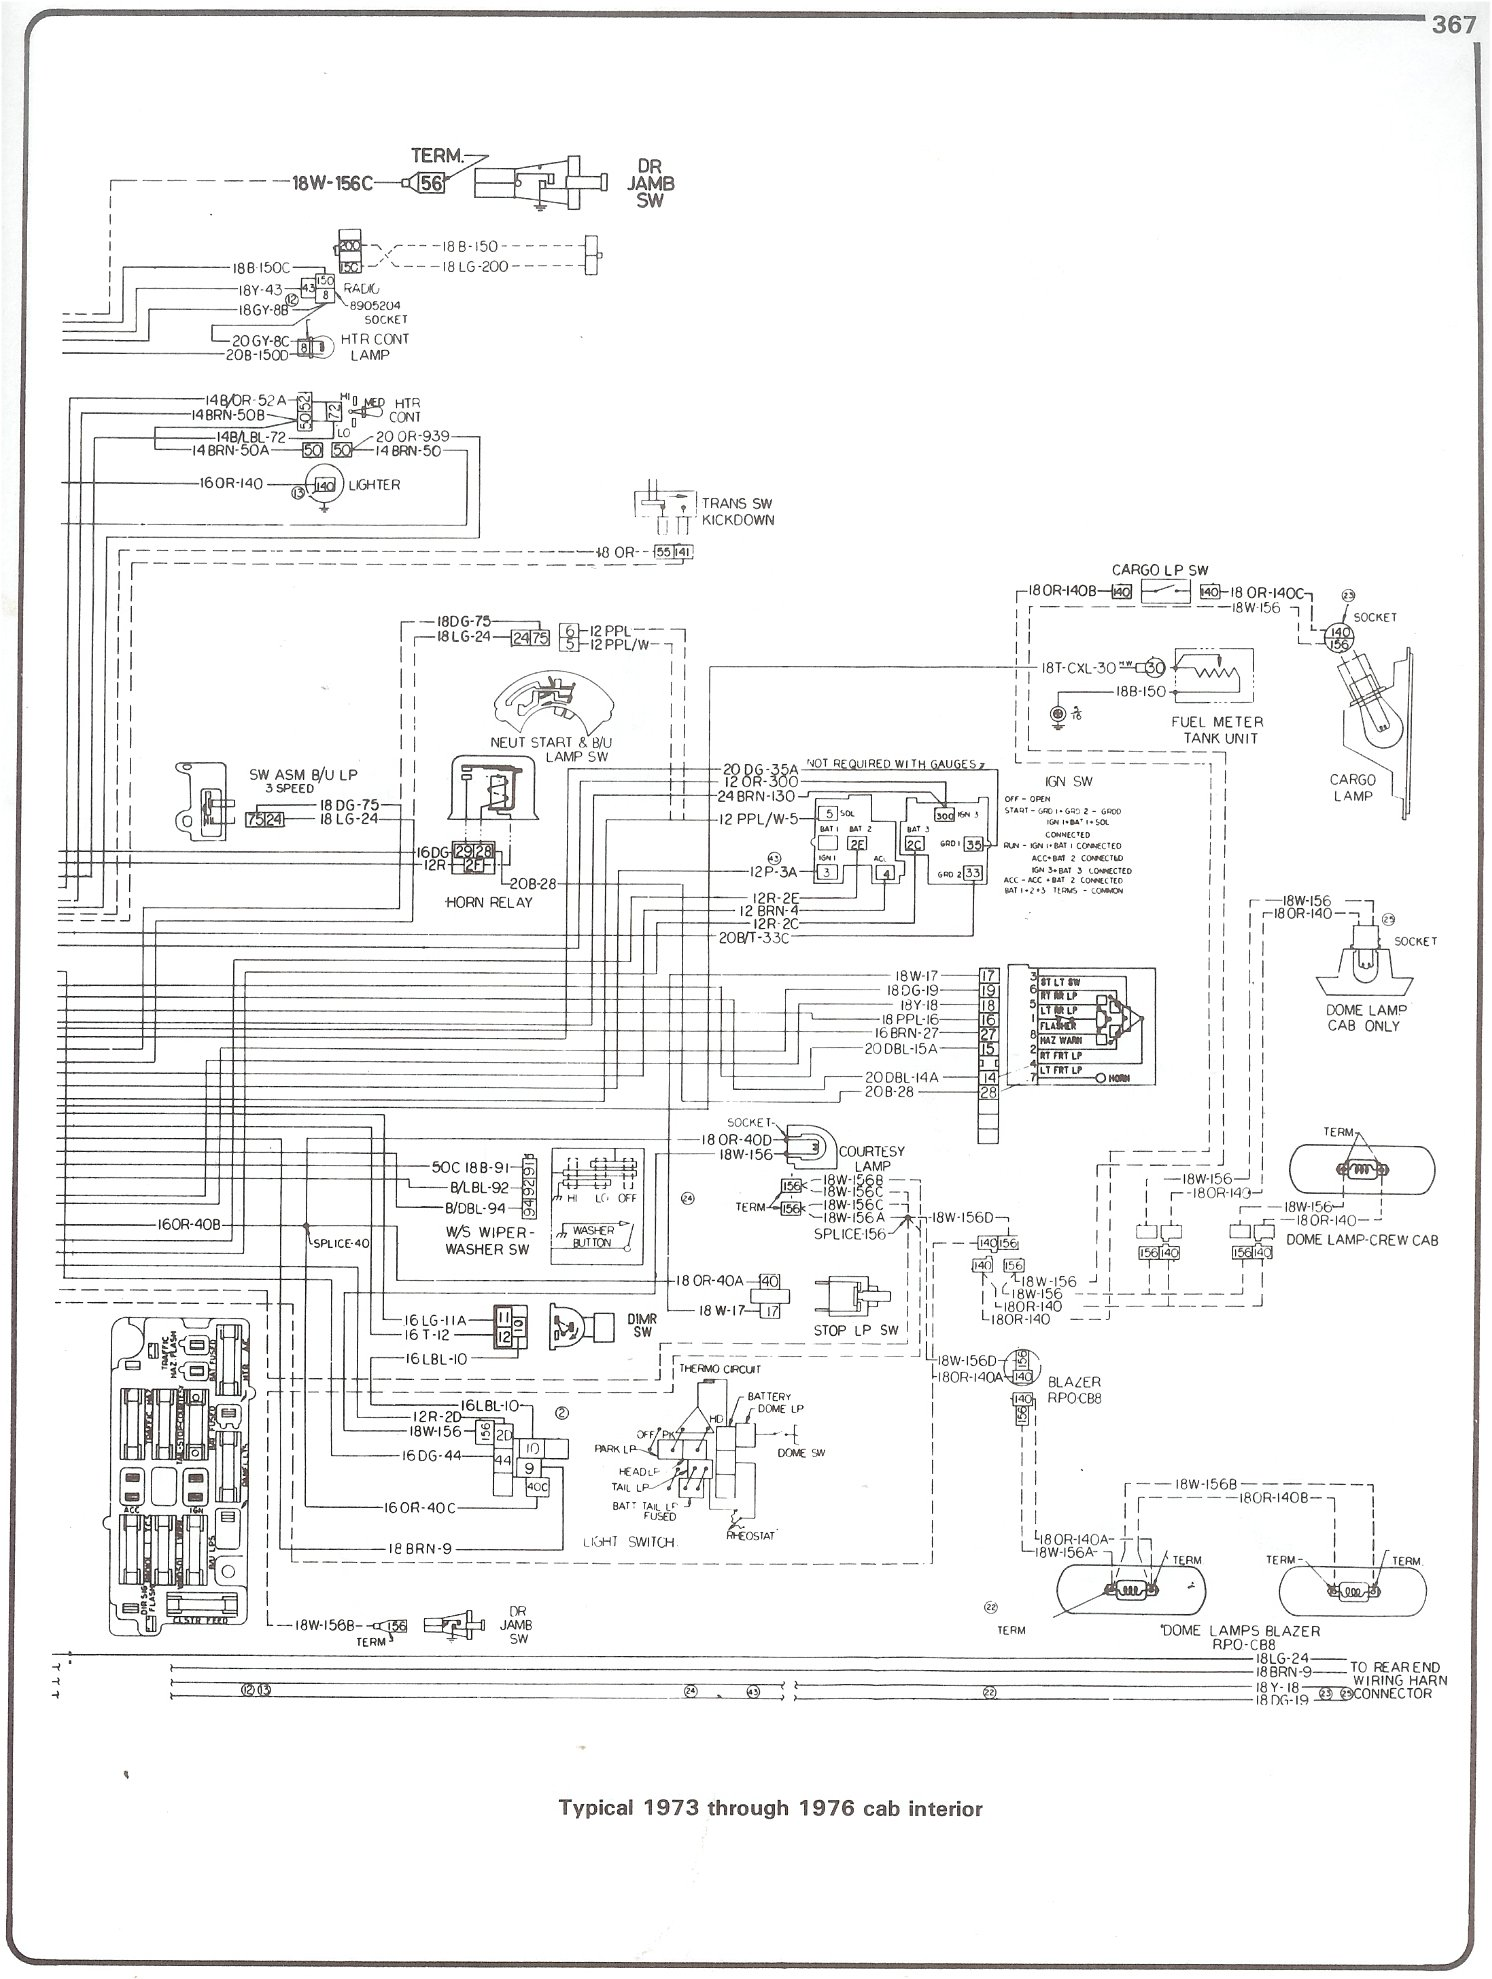 1976 Chevrolet Wiring Diagram Will Be A Thing 79 Nova Wire Schematics Complete 73 87 Diagrams Rh Forum 87chevytrucks Com Chevy Alternator